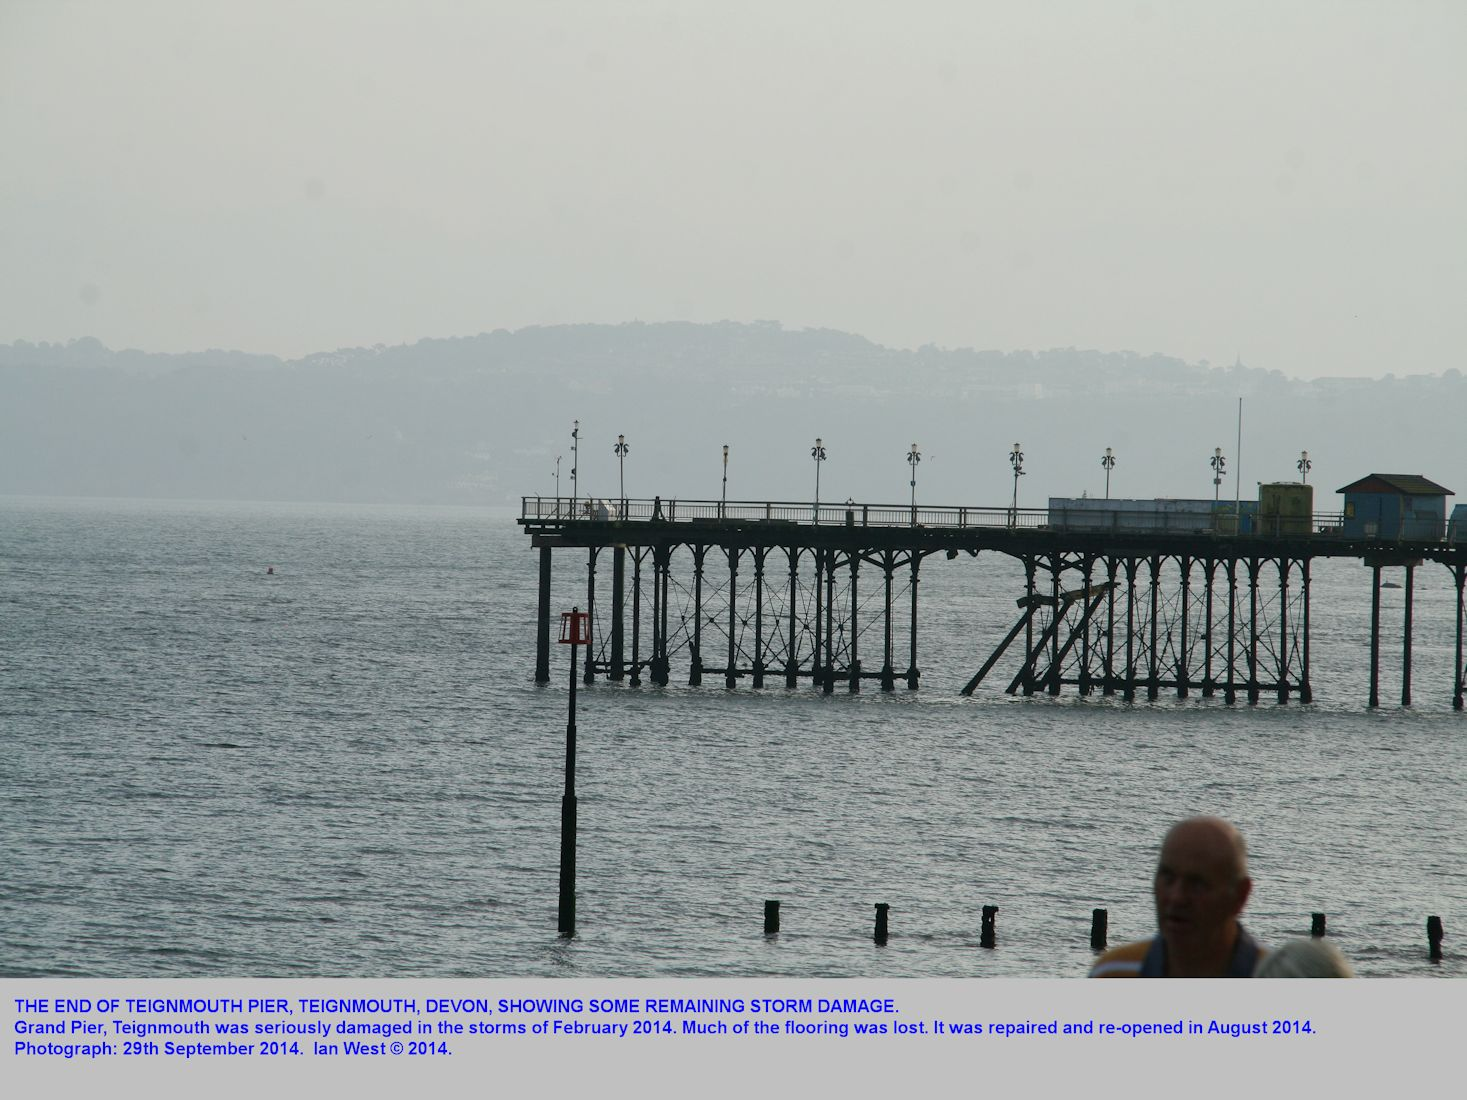 Teignmouth Pier was extensively damaged in the February 2014 storm but reopened later in the year, with still some damage, Teignmouth,  Devon, photo September 2014